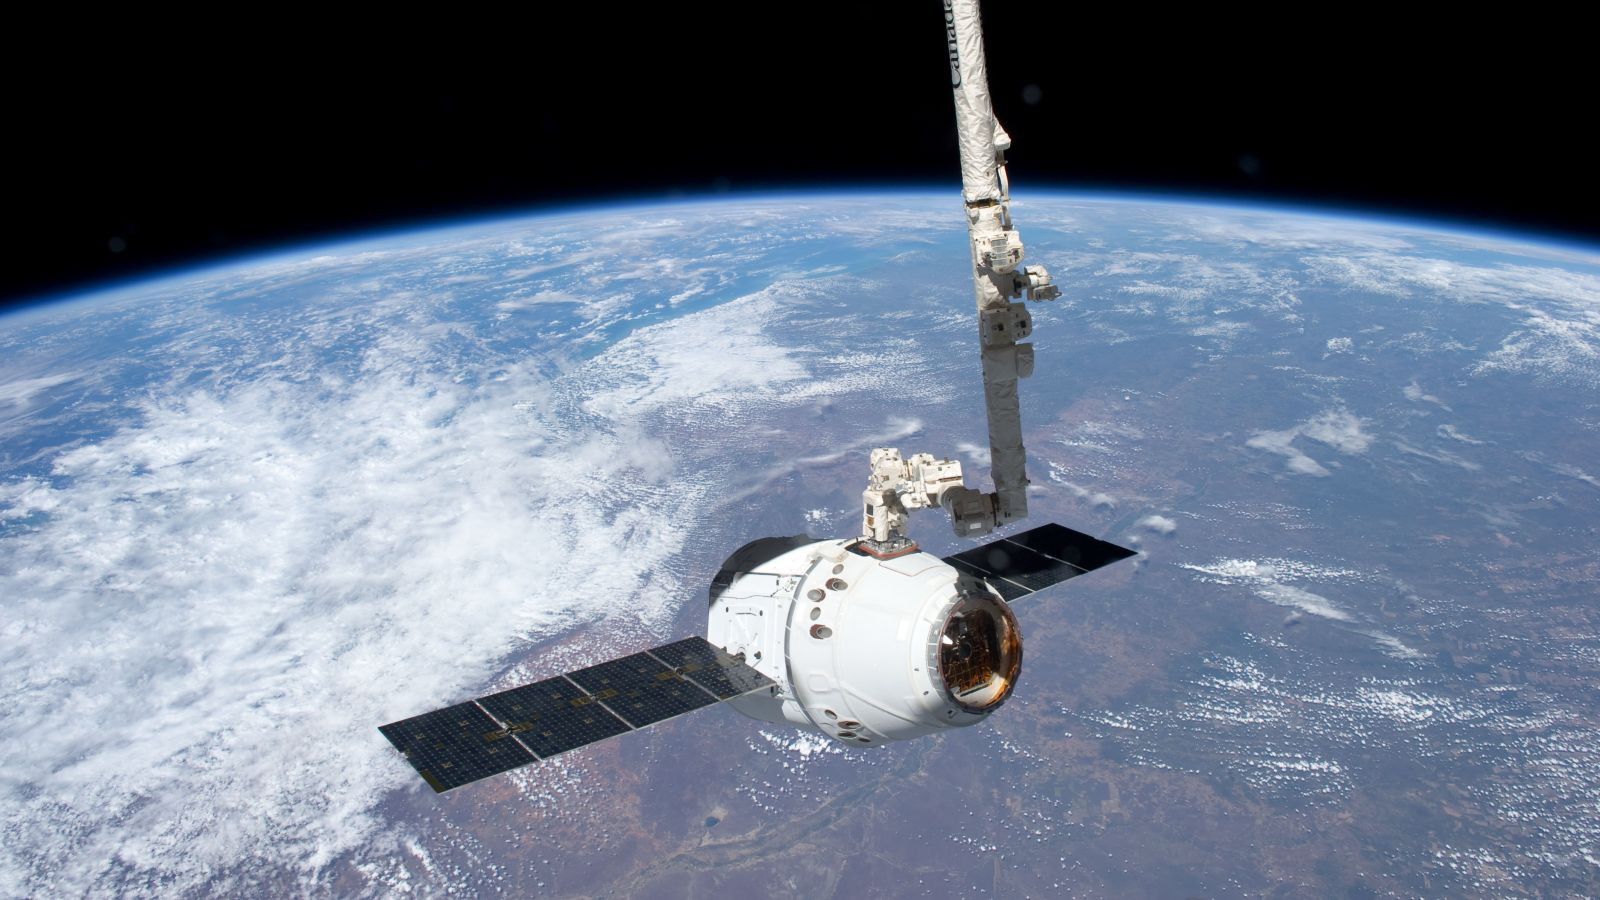 Canadarm2 grapples a SpaceX Dragon capsule from free flight to berth it to the ISS. Photo Credit: NASA